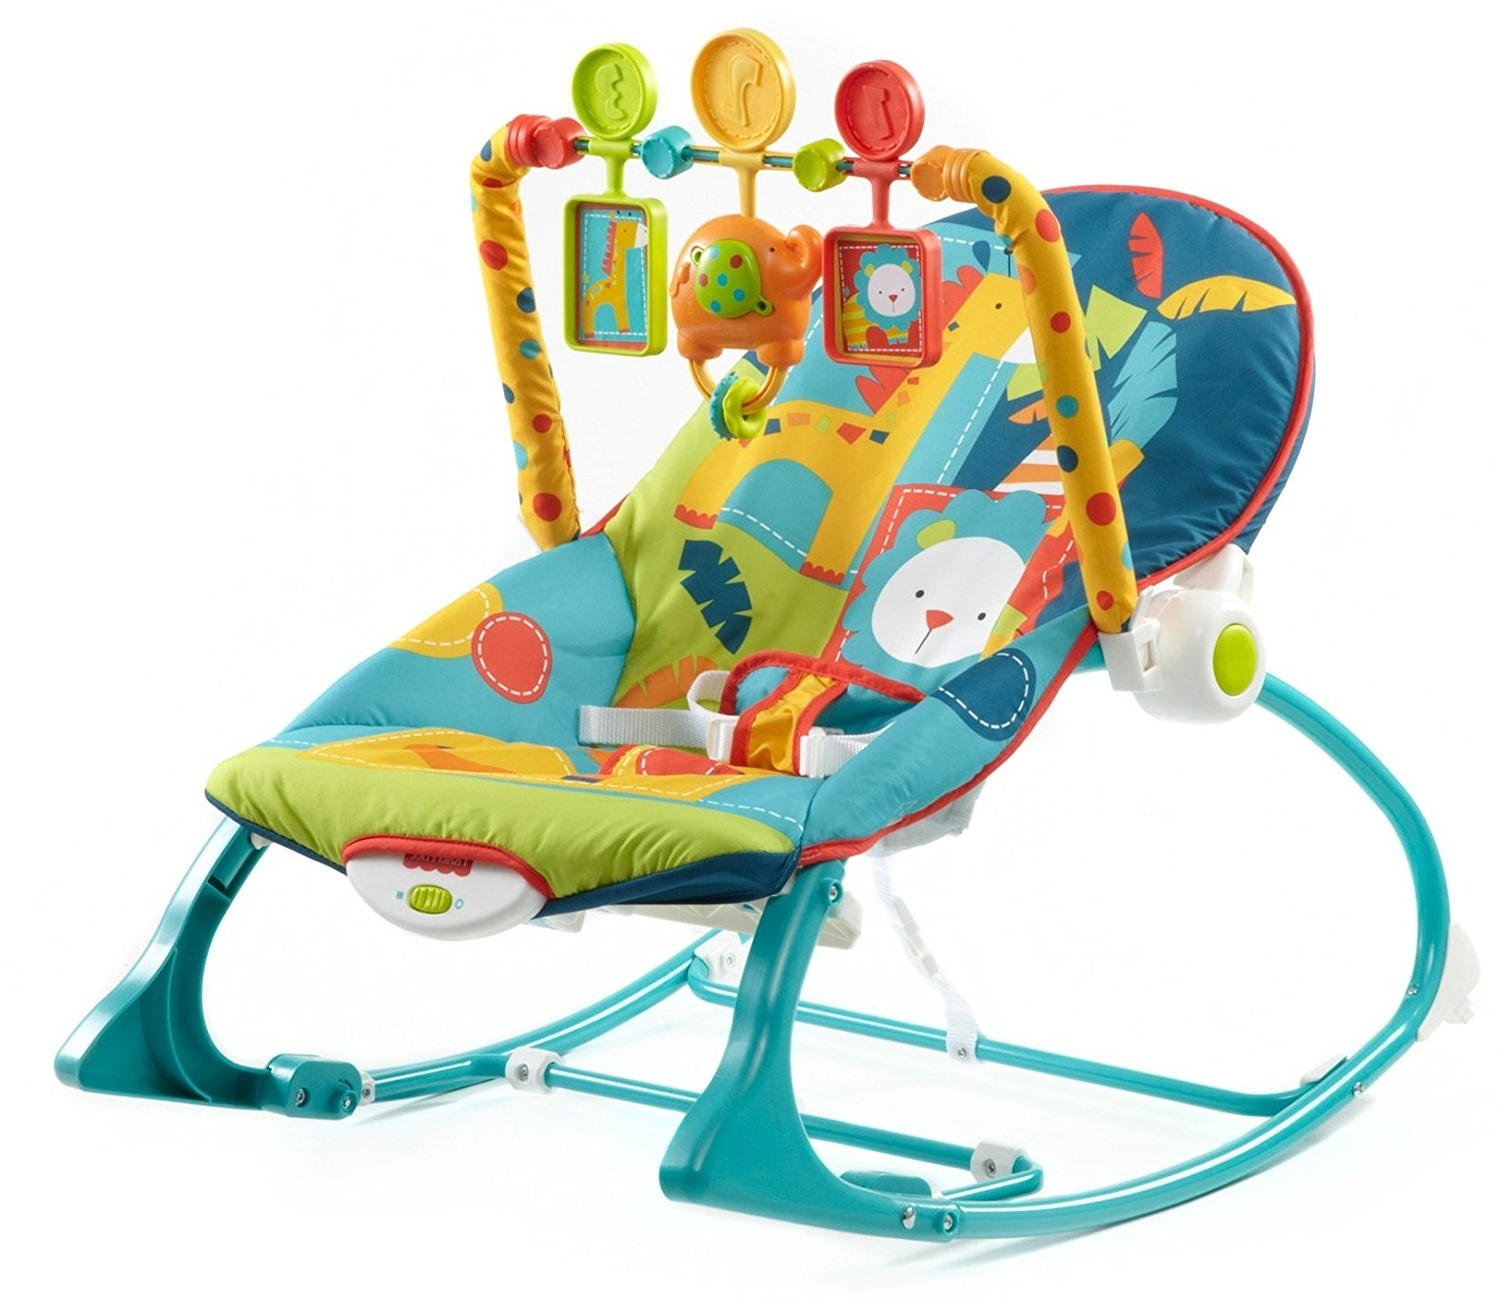 Fashionable Benefits Of Baby Rocking Chair – Bellissimainteriors Pertaining To Rocking Chairs For Babies (View 5 of 15)